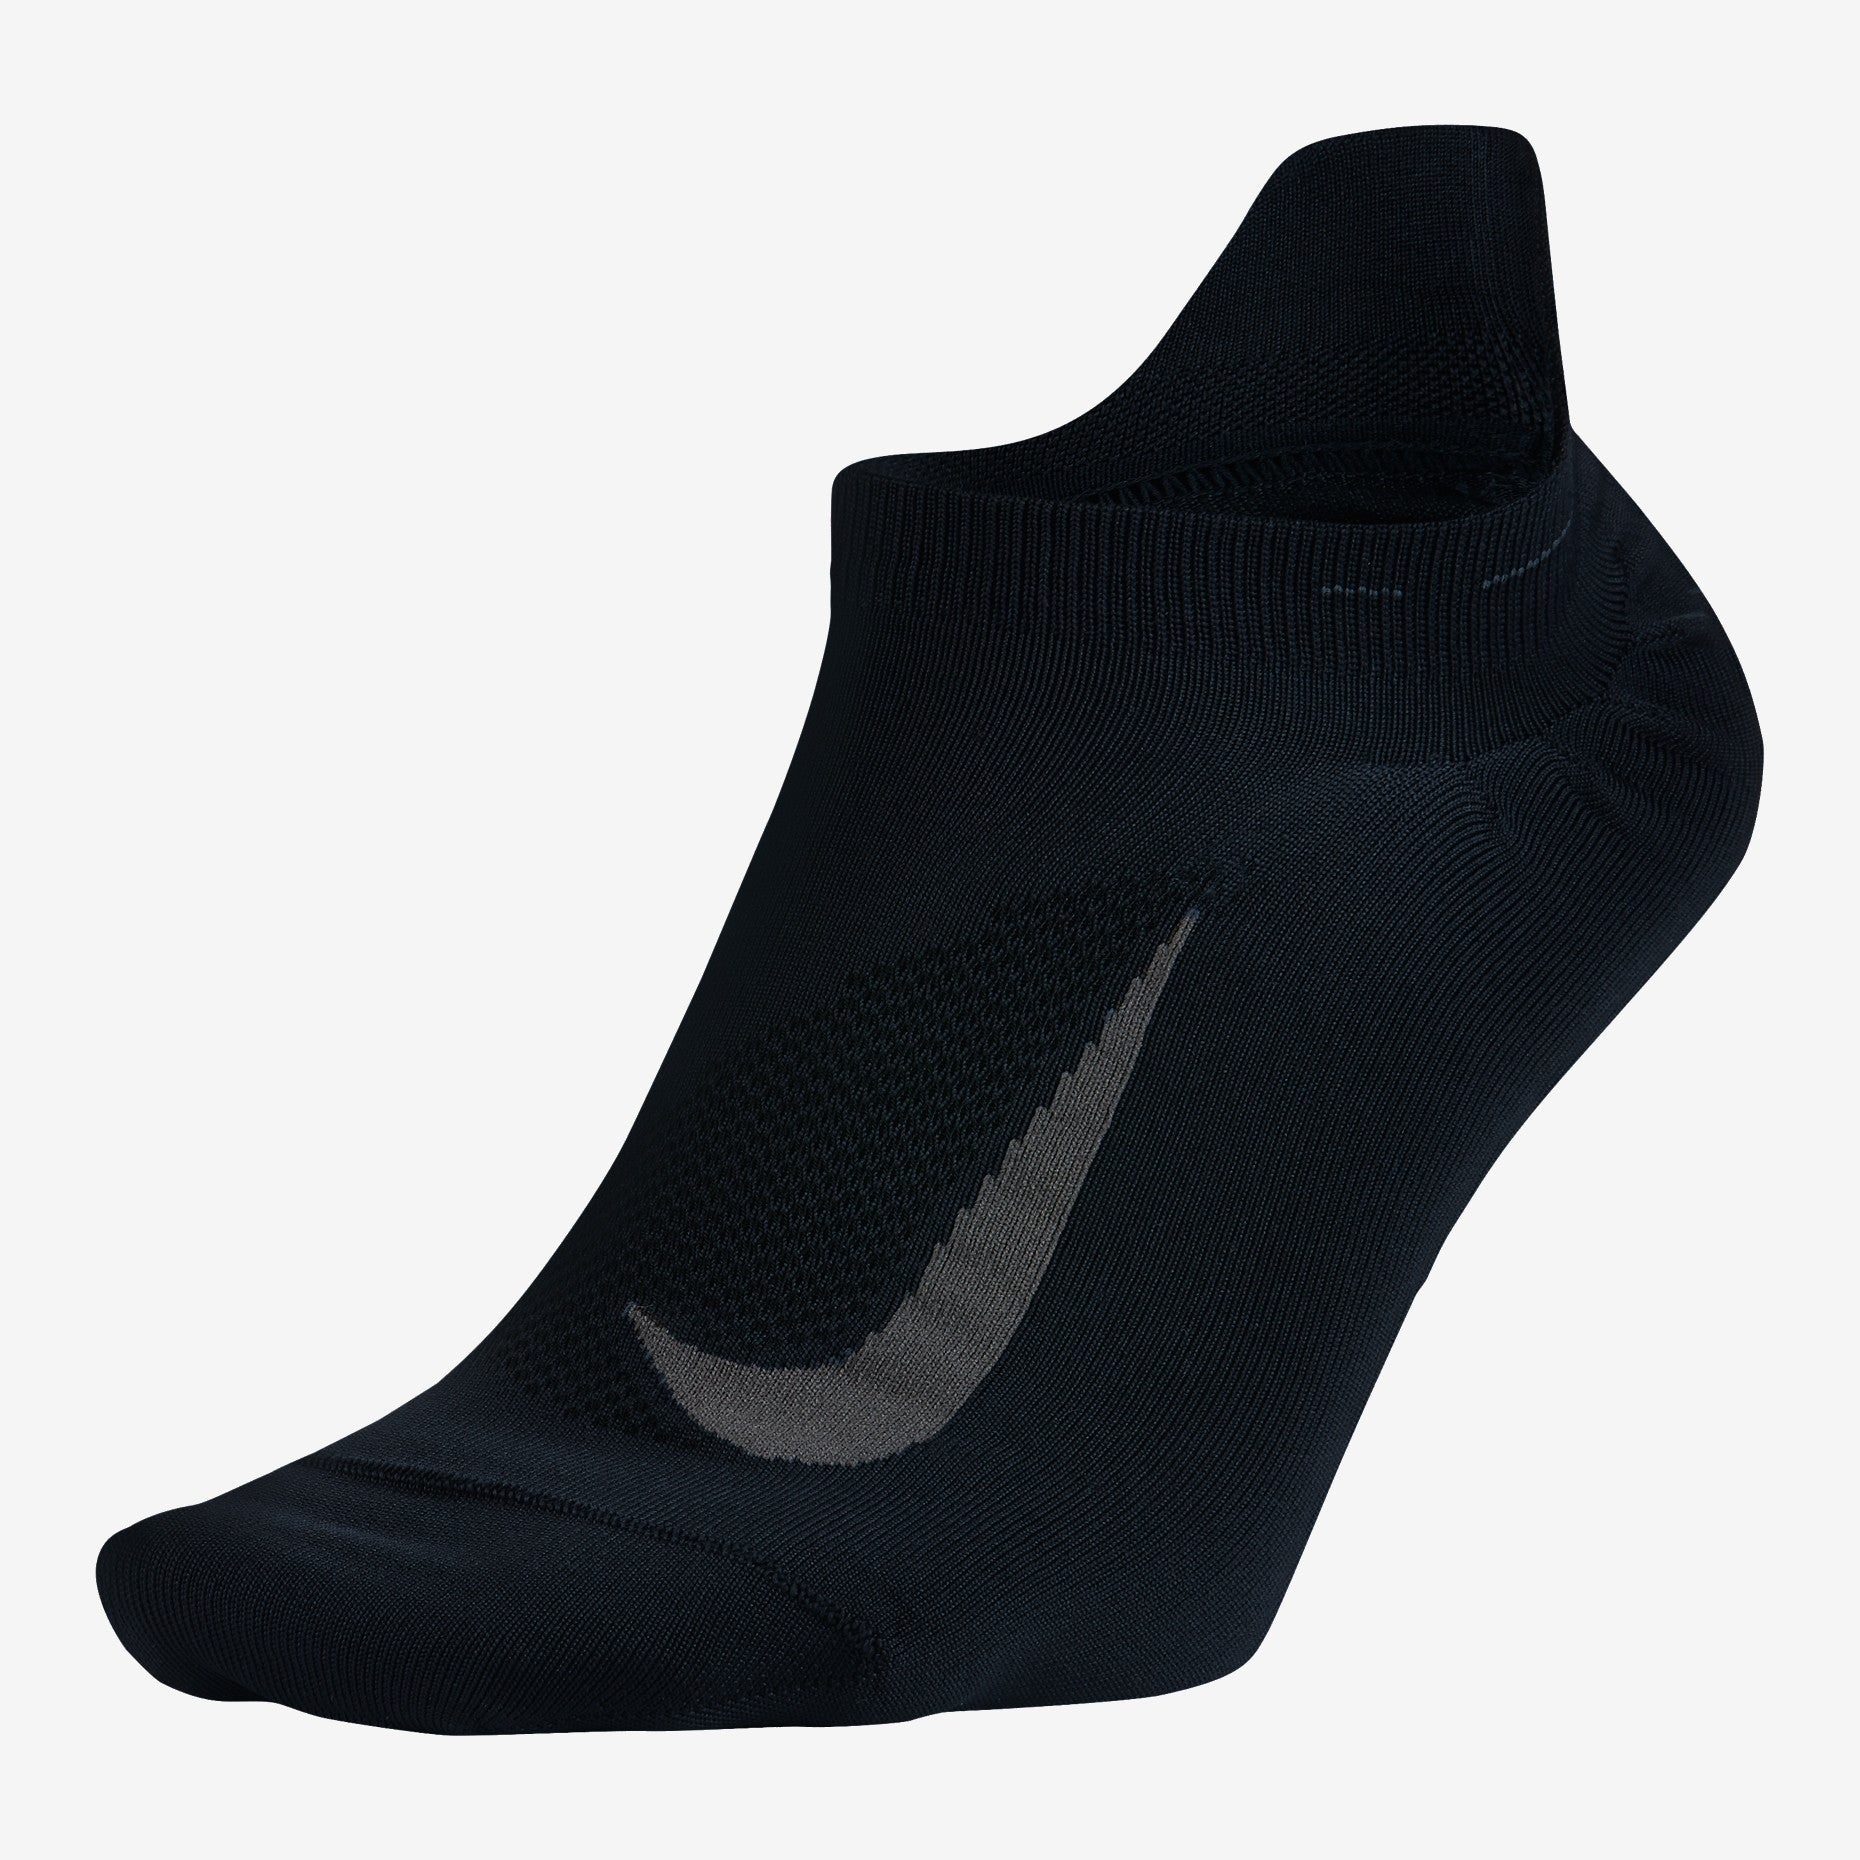 buy popular c9ba8 9614c Nike - Nike Elite Lightweight No-Show Running Sock - La Liga Soccer